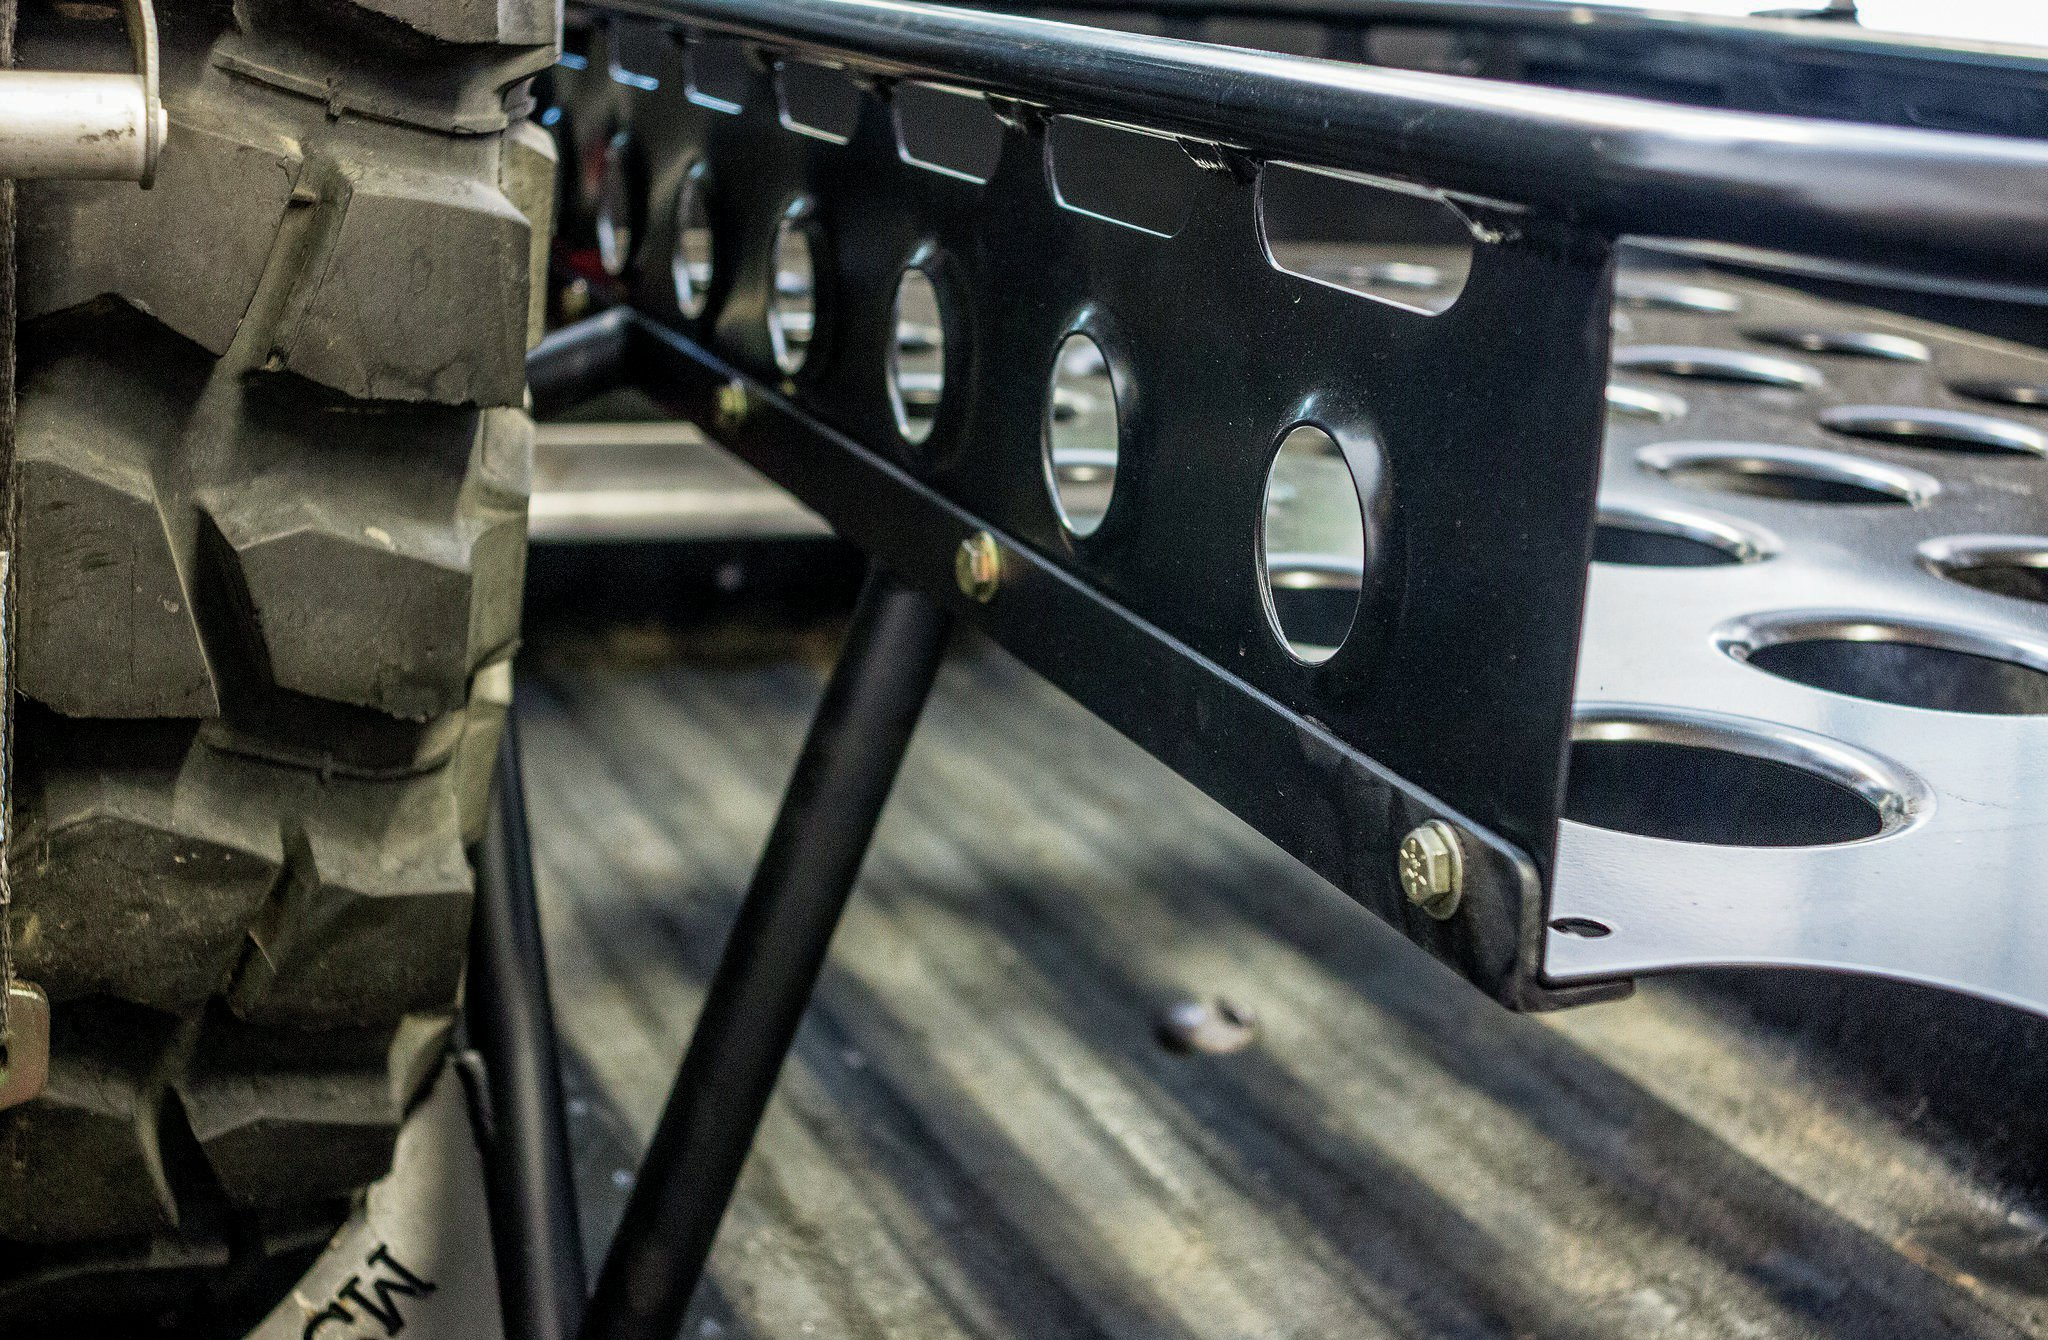 The spare tire mount was built out of 1-inch tubing and acted as the foundation for the rail that holds the Baja Basket on the driver side. Note that the basket bolts into the mount and can easily be removed if necessary.